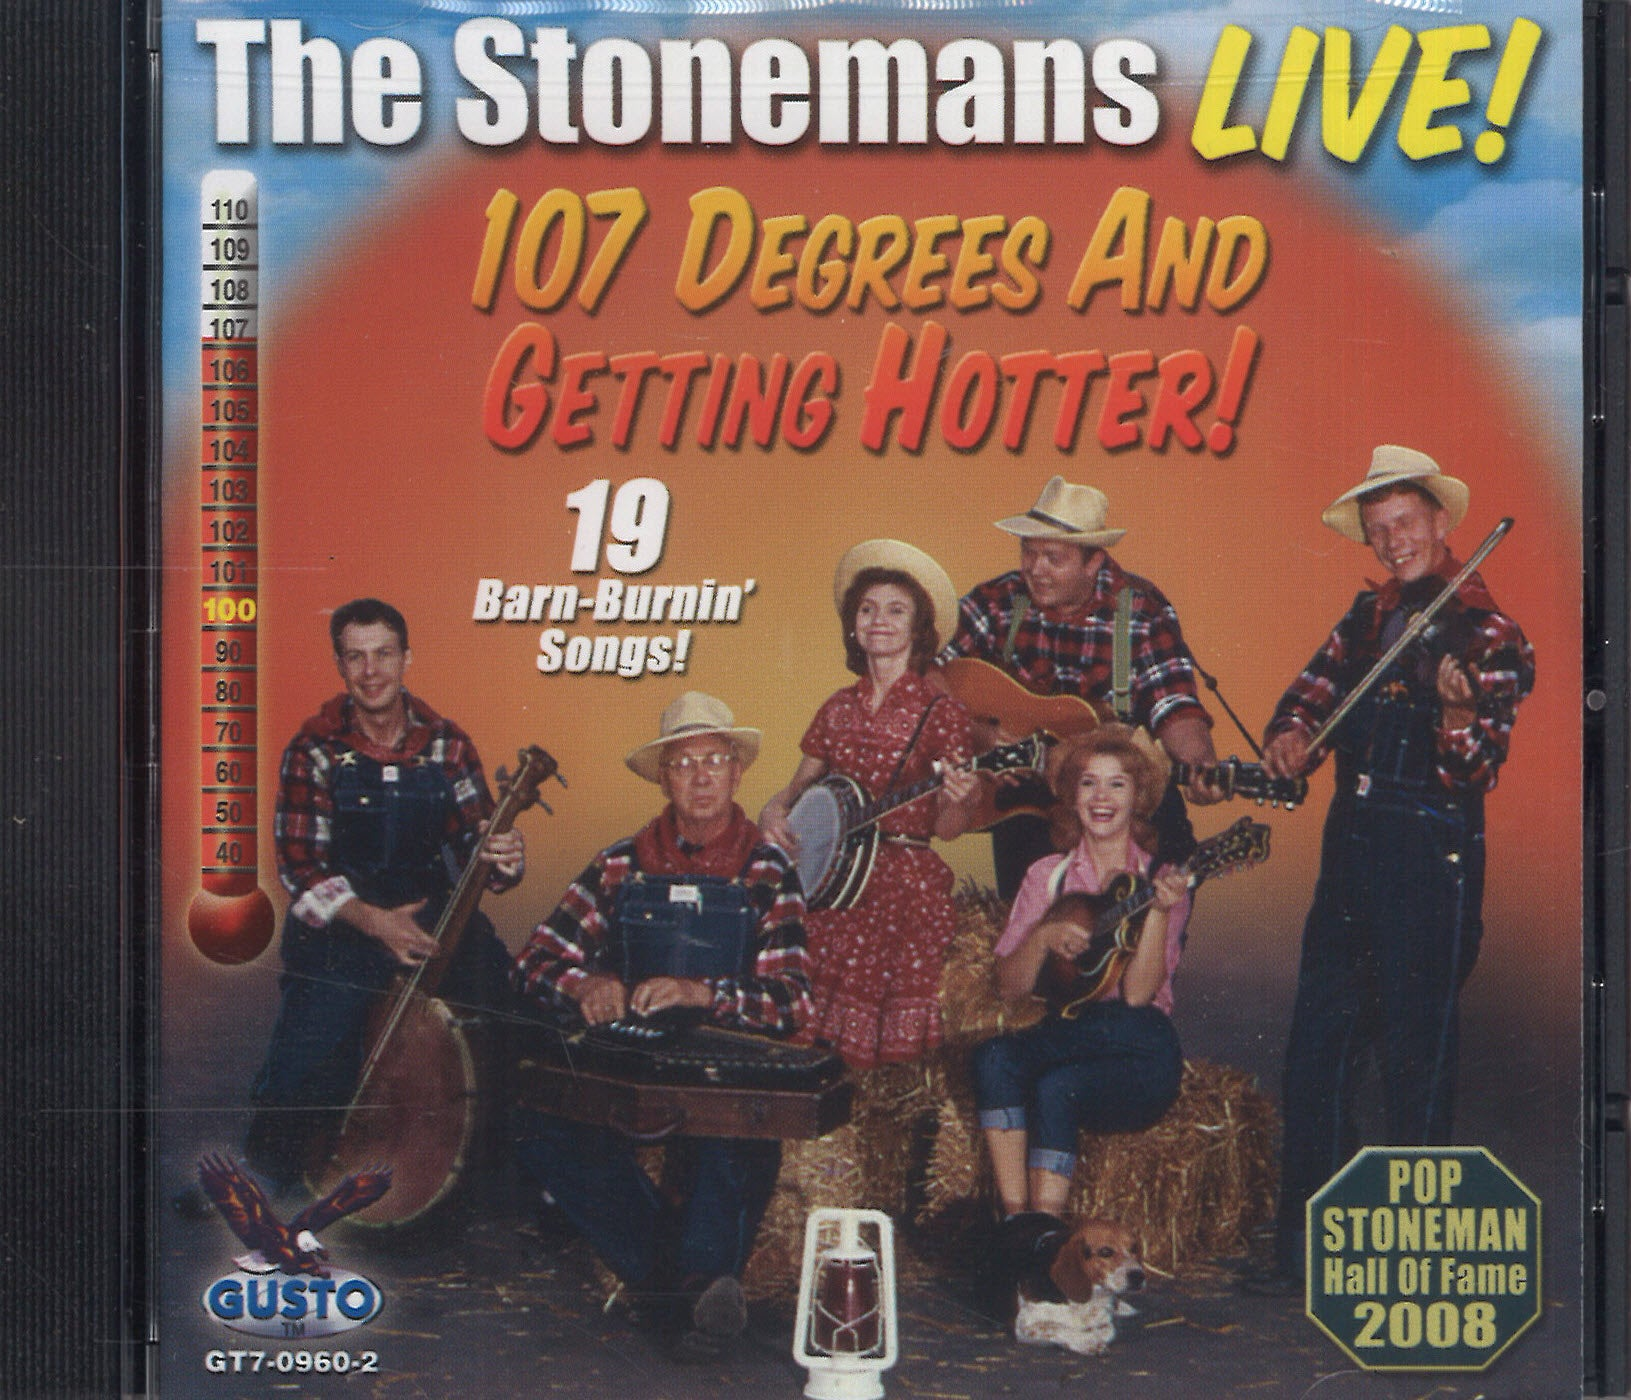 The Stonemans Live! 107 Degrees And Getting Hotter